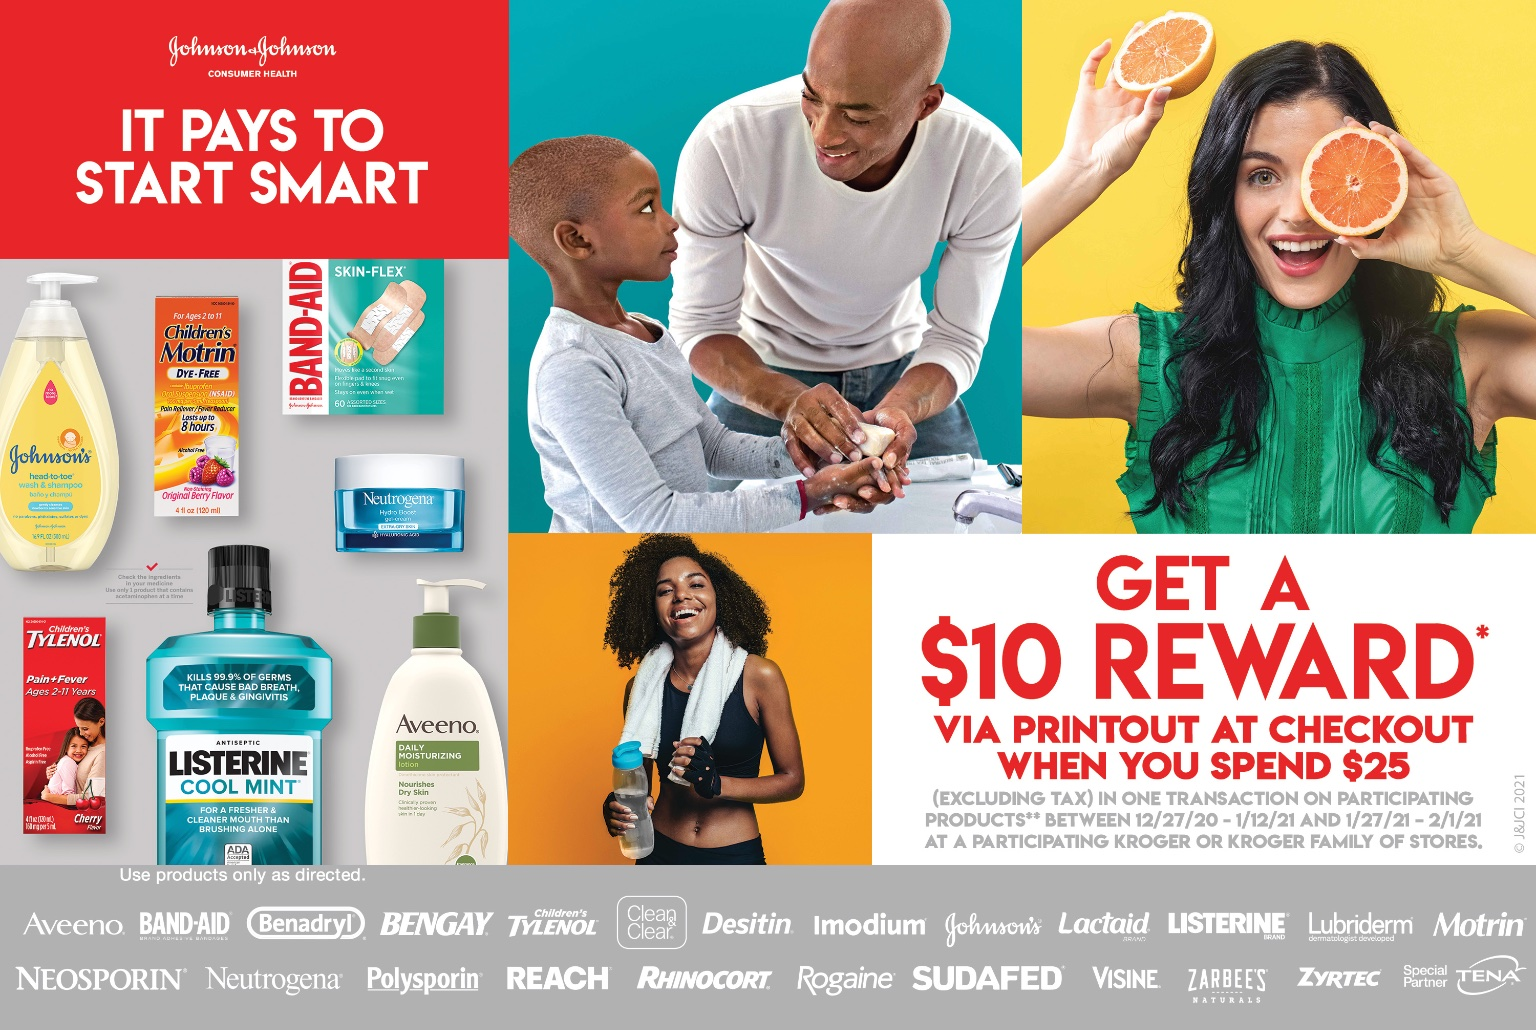 It pays to start smart! Get a $10 reward* via printout at checkout when you spend $25